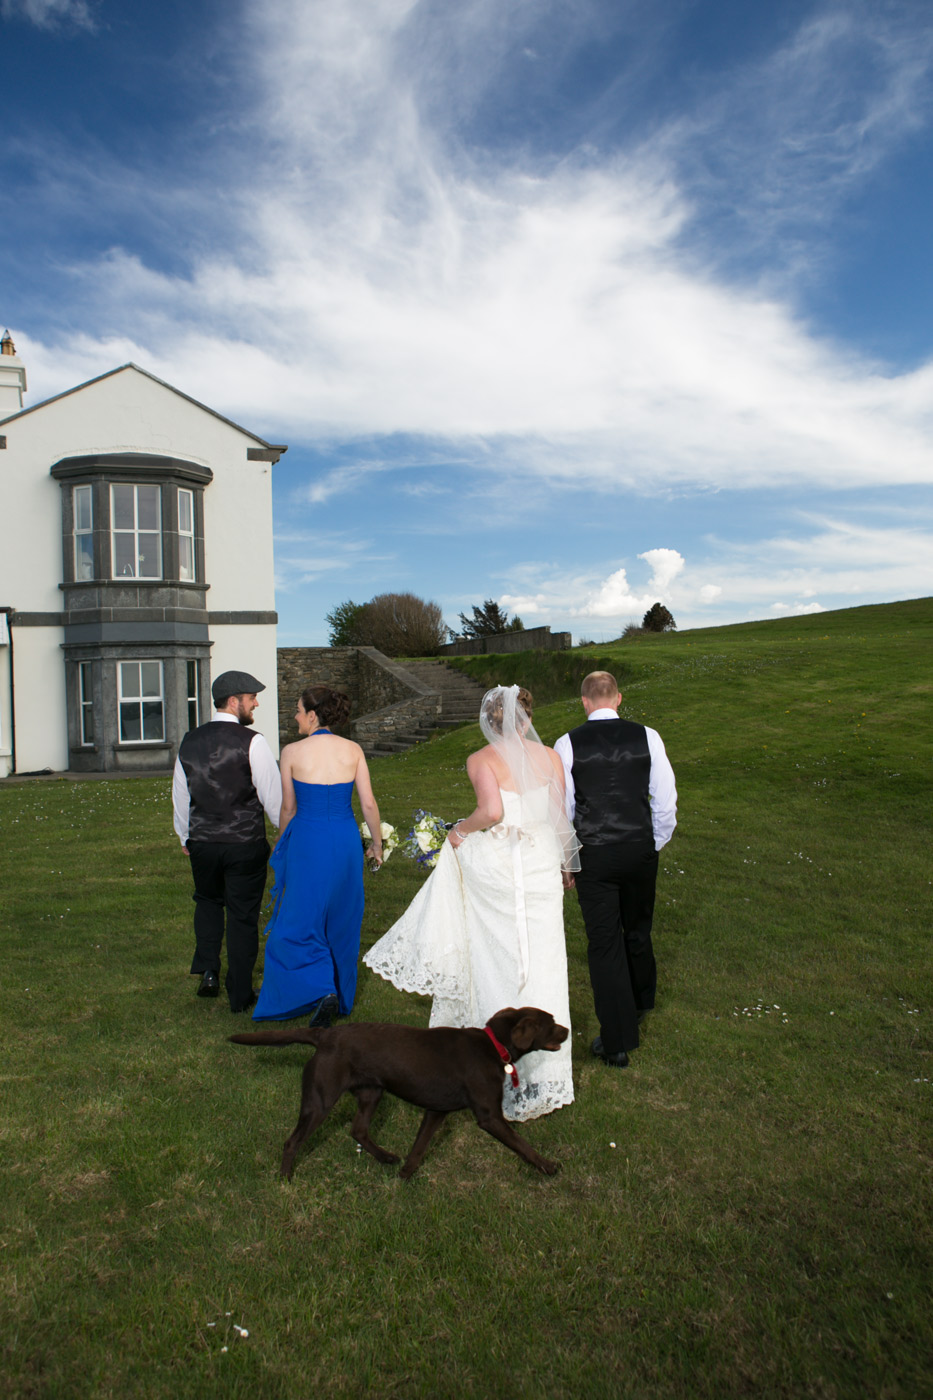 wedding-photo-67